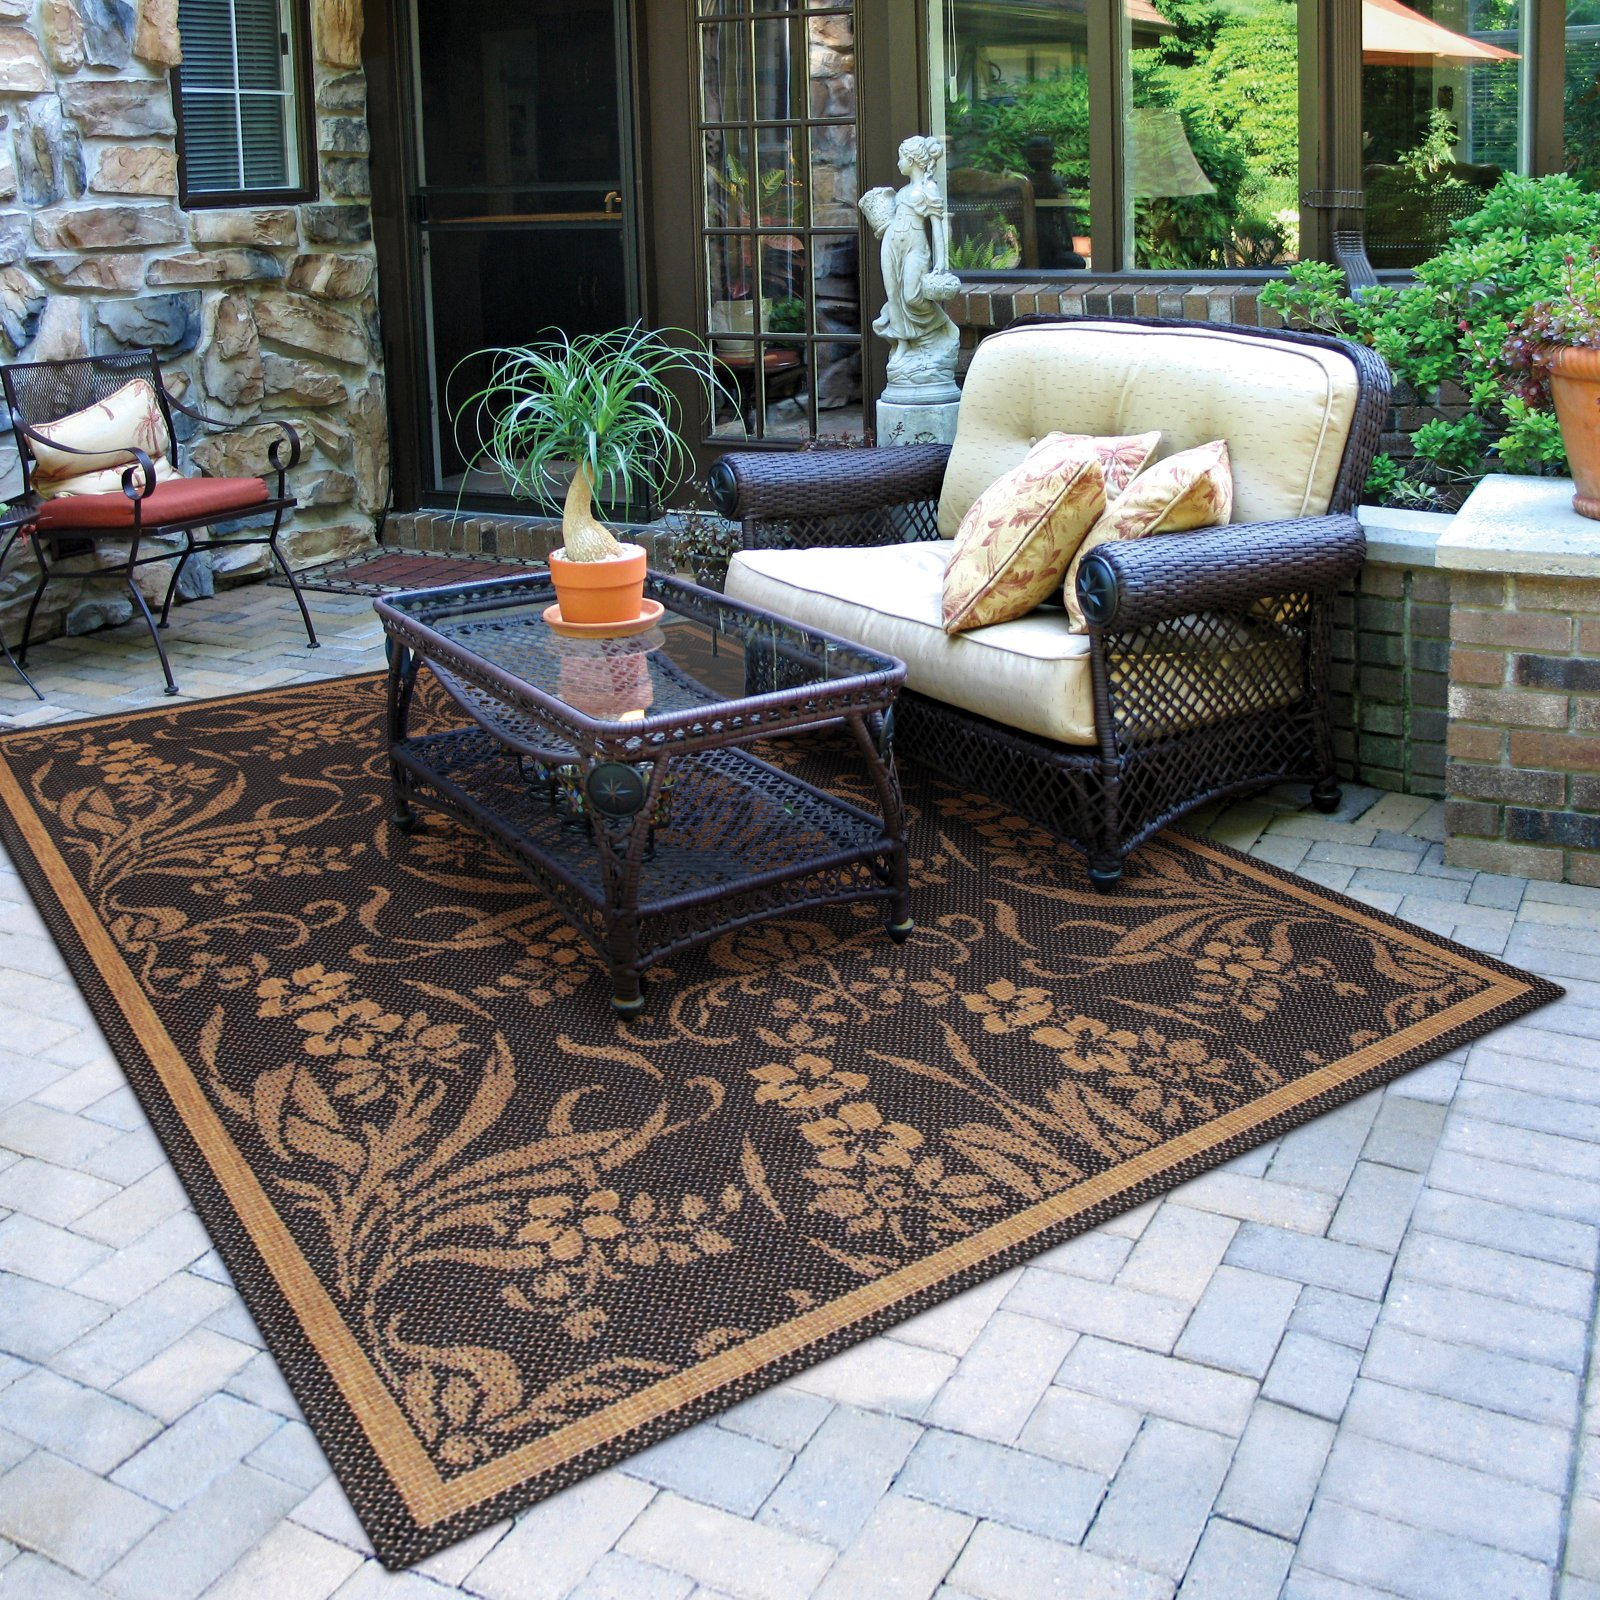 Exterior Siding Attractive Indoor Outdoor Carpet For Home Decor